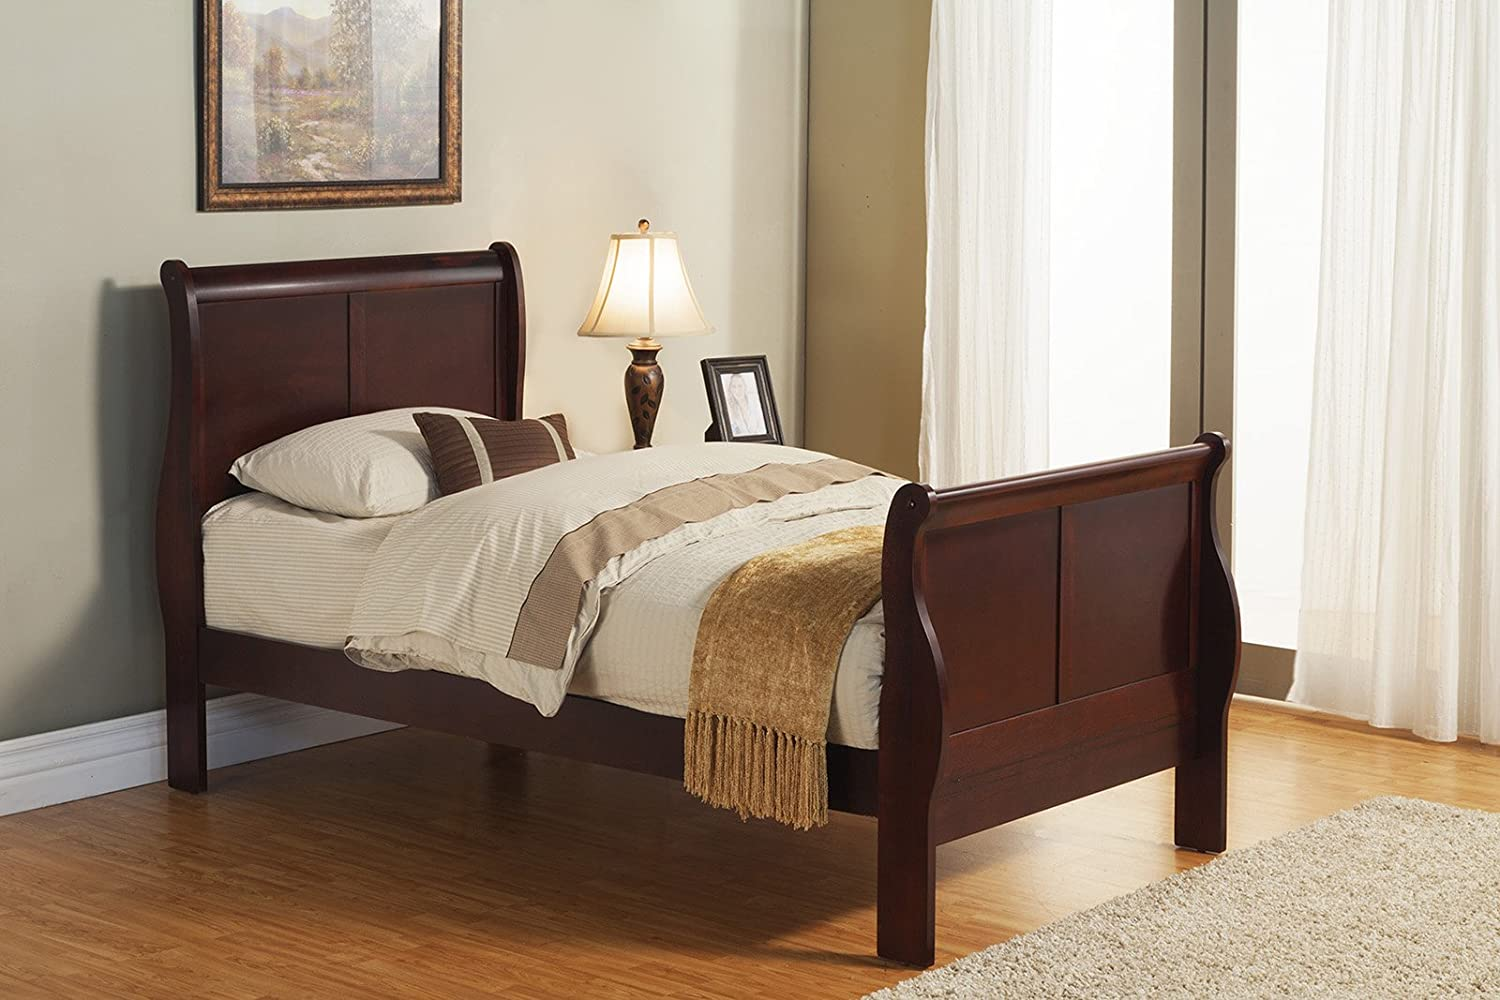 Amazon.com: Alpine Furniture Louis Philippe II Sleigh Bed, King Size: Home  U0026 Kitchen